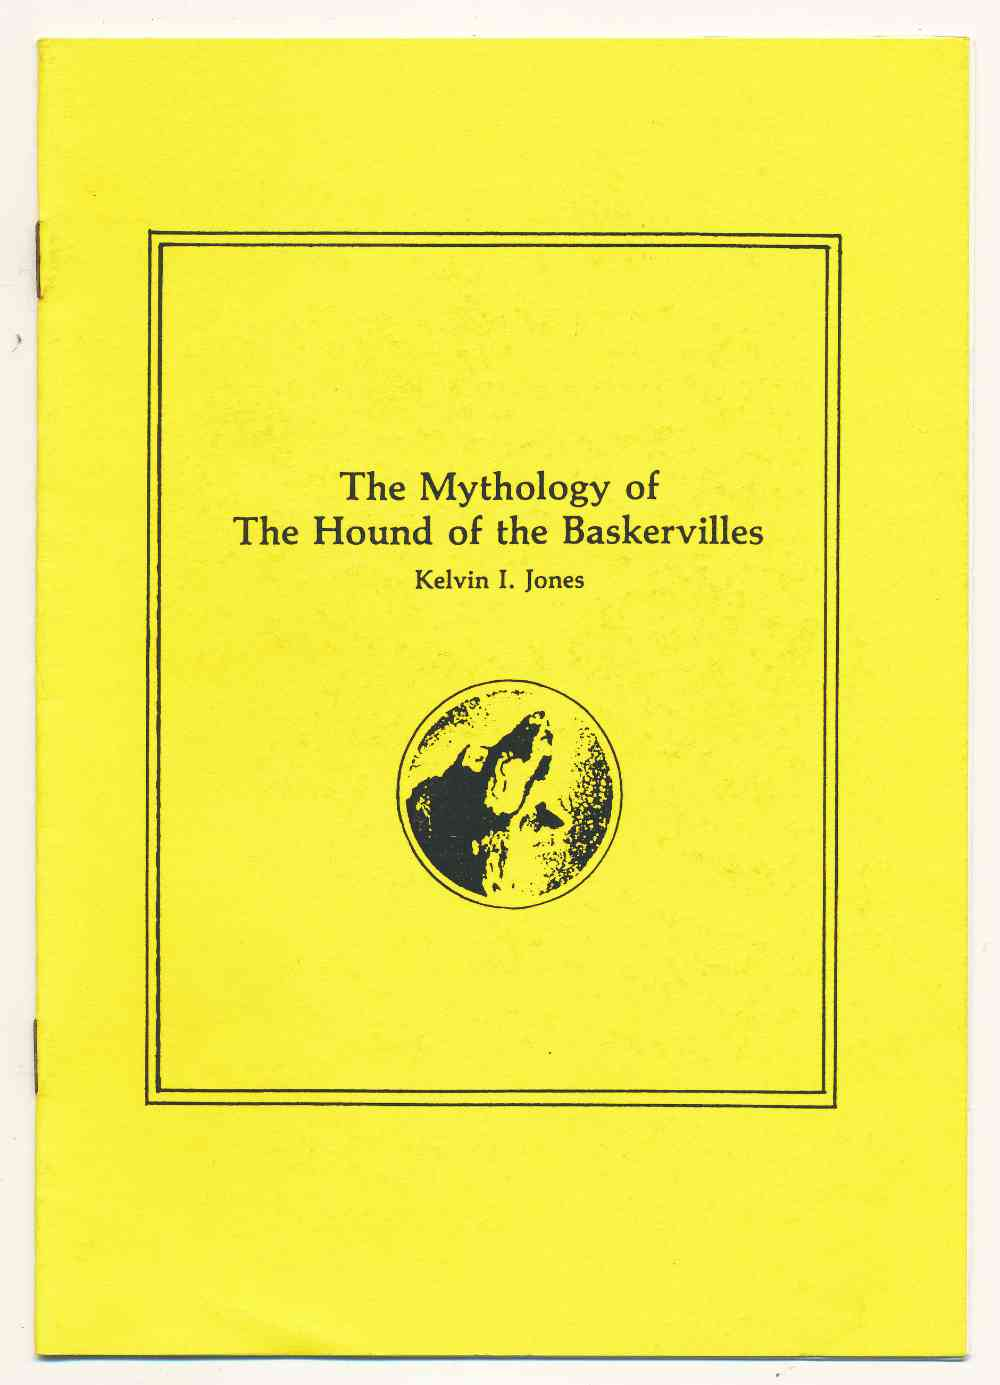 The mythology of the hound of the Baskervilles